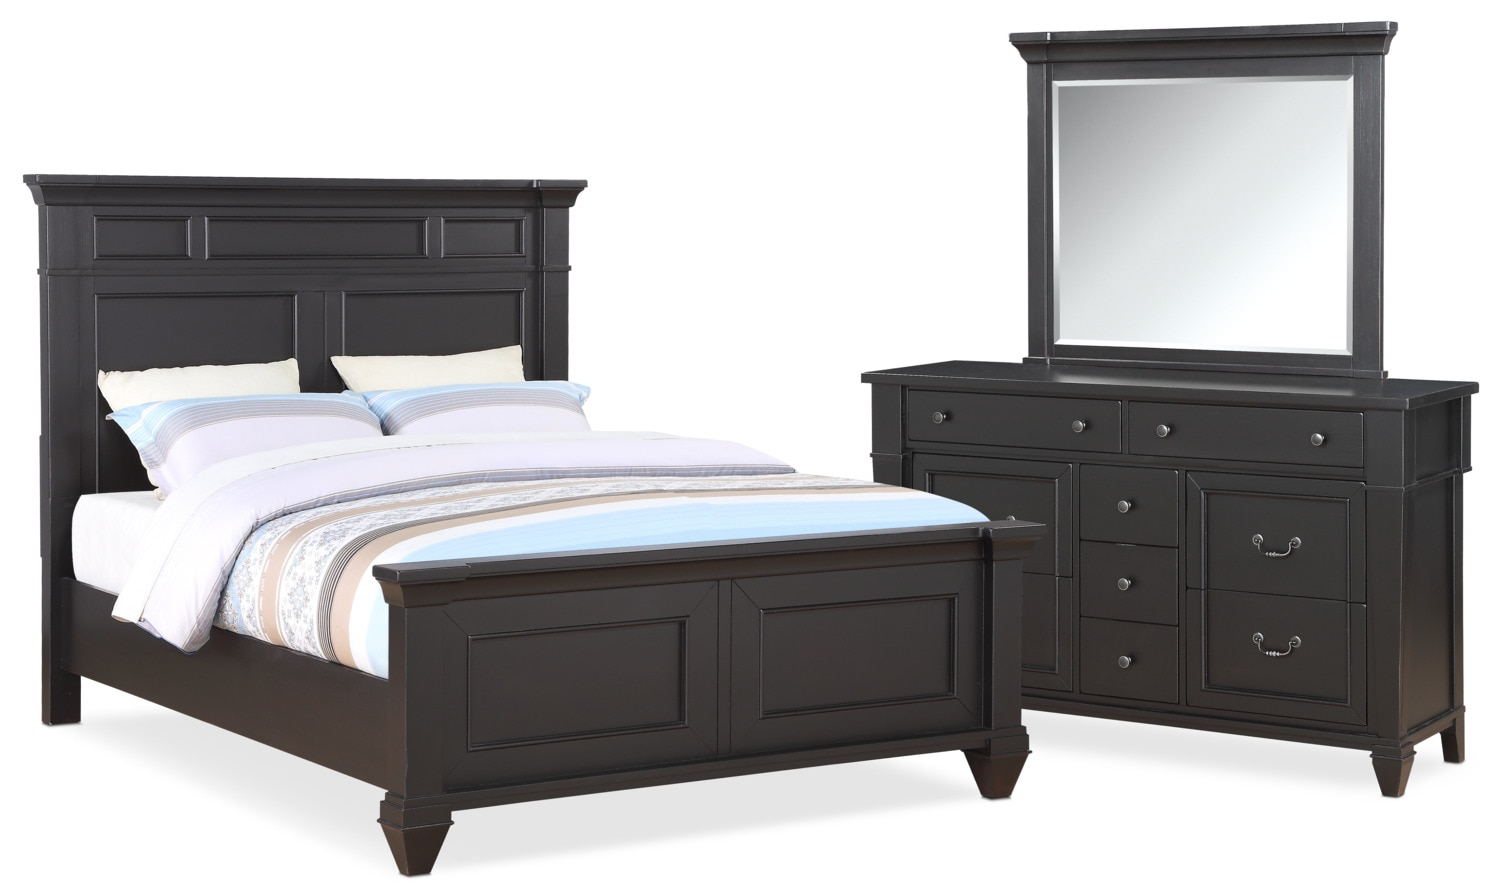 Waverly 5 Piece King Bedroom Set   Black